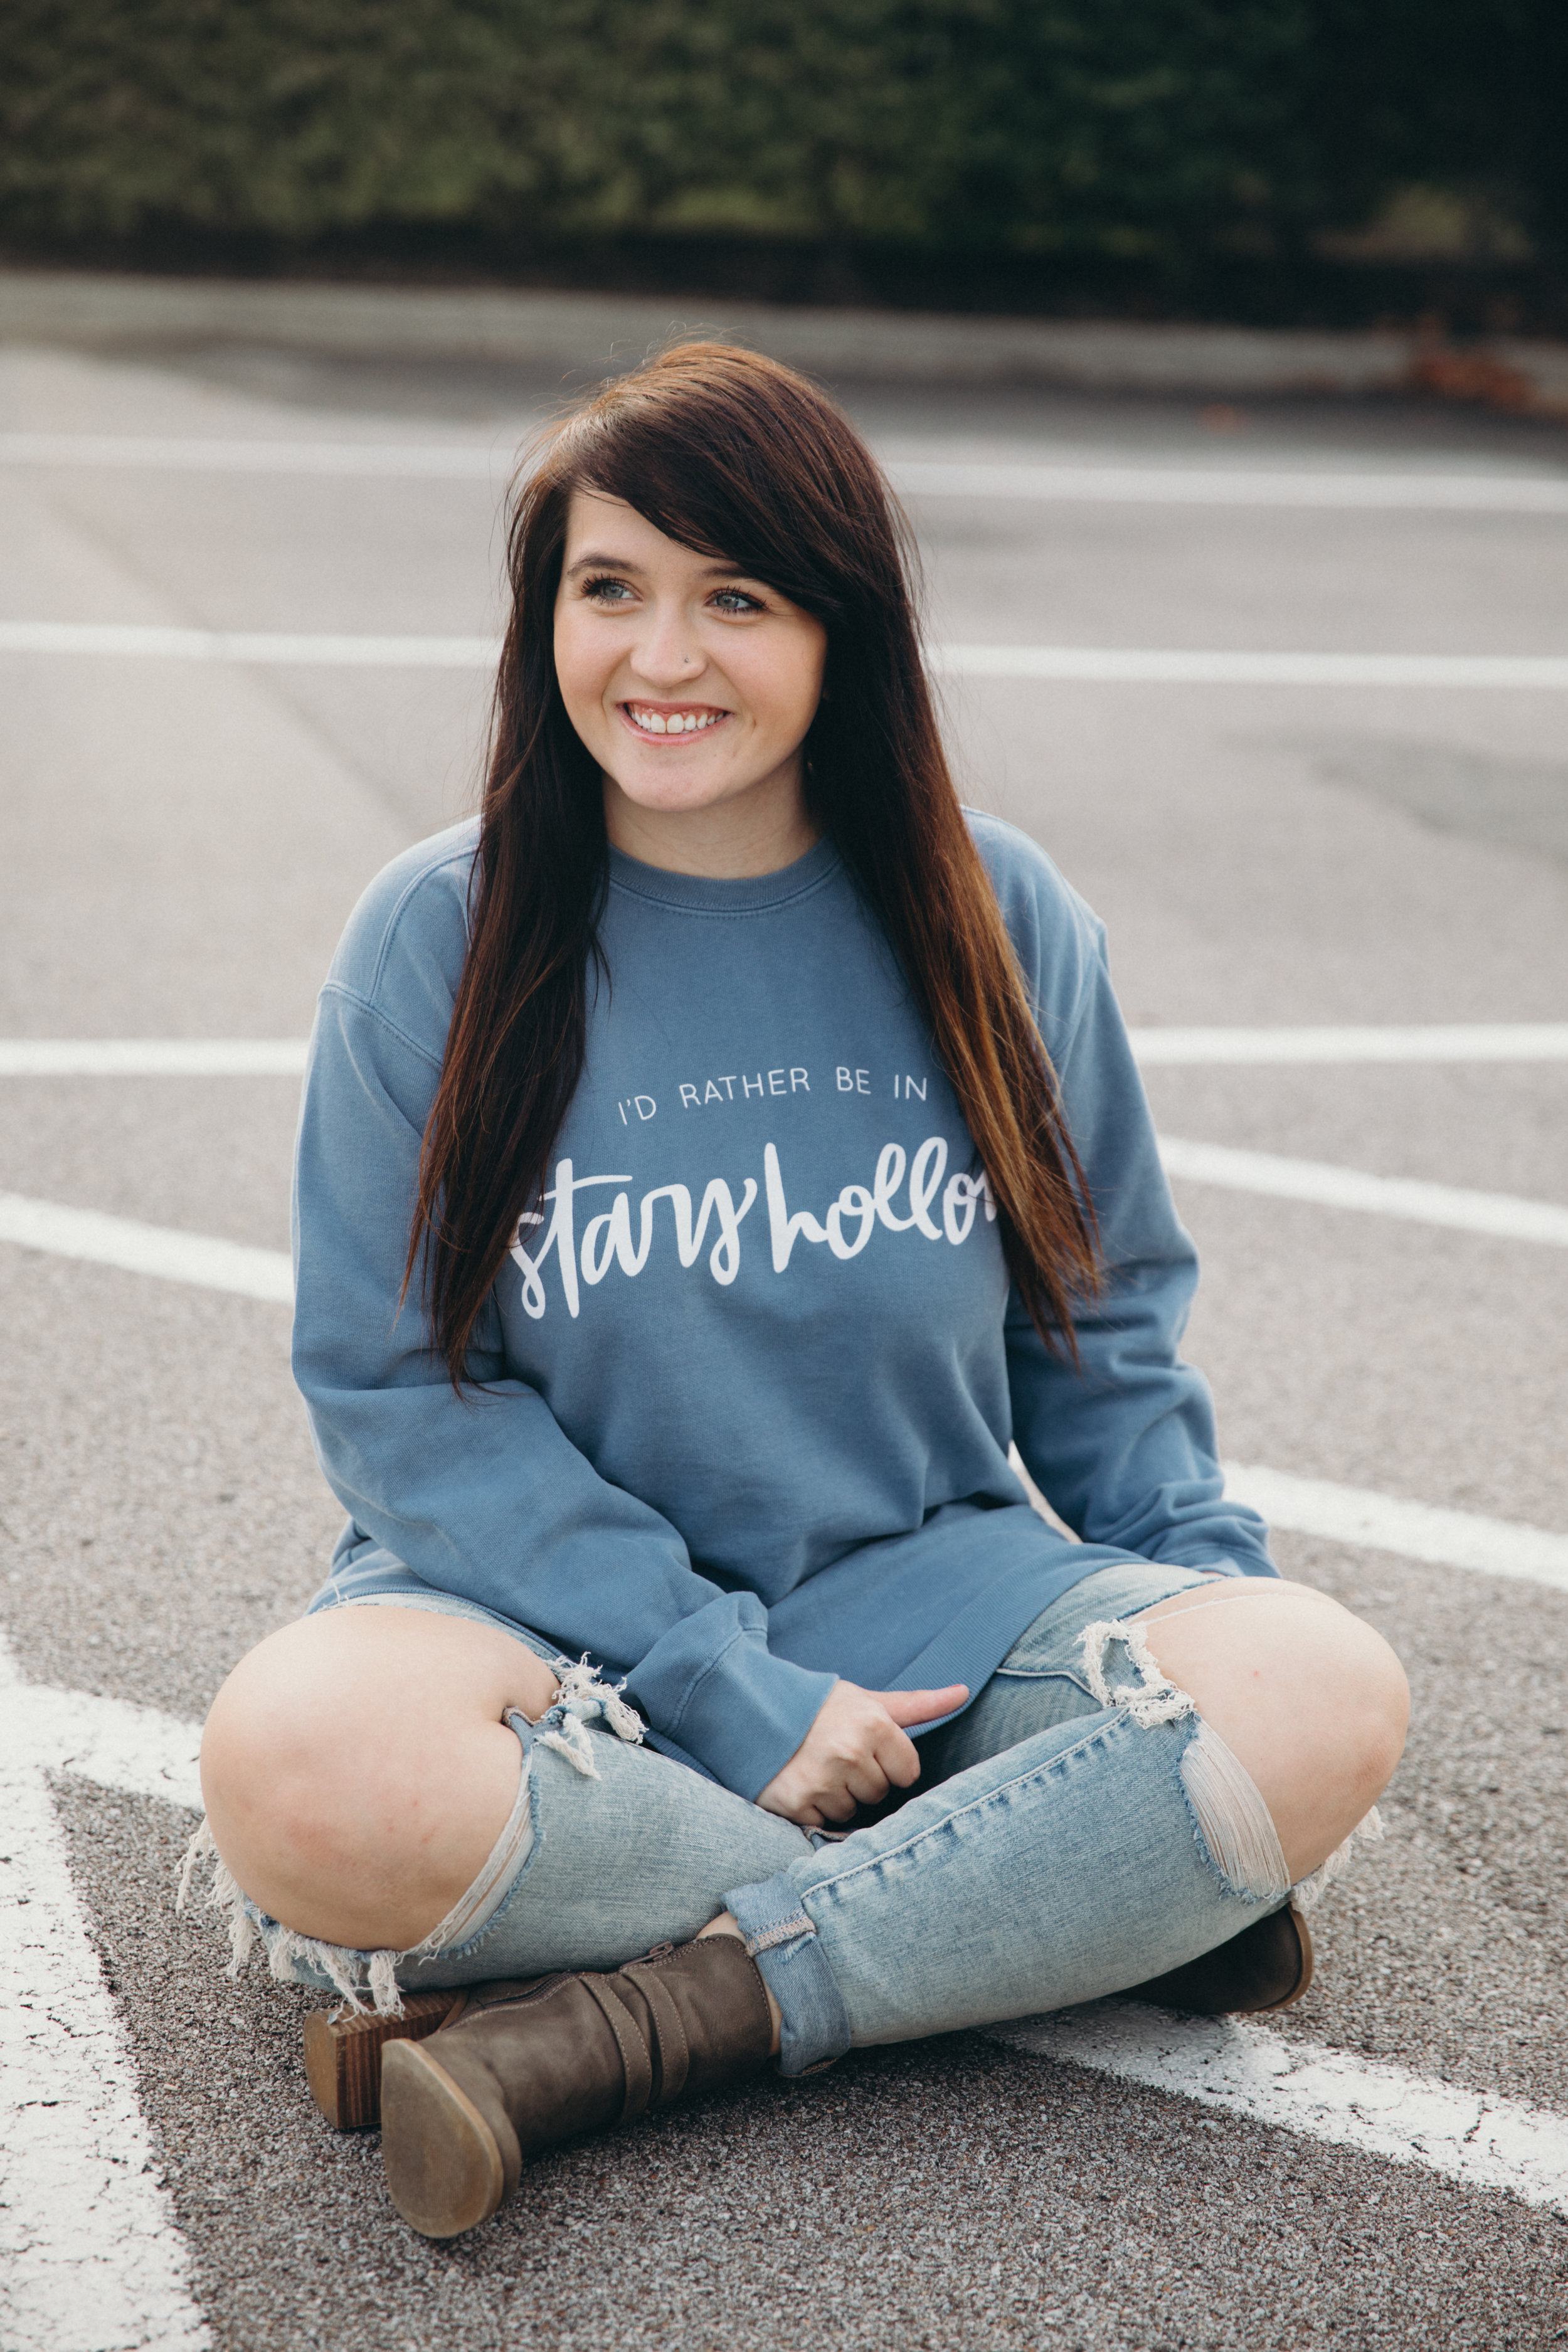 I'd Rather Be In Stars Hollow Gilmore Girls Sweatshirt Chelcey Tate x The Cake Shop www.chelceytate.com